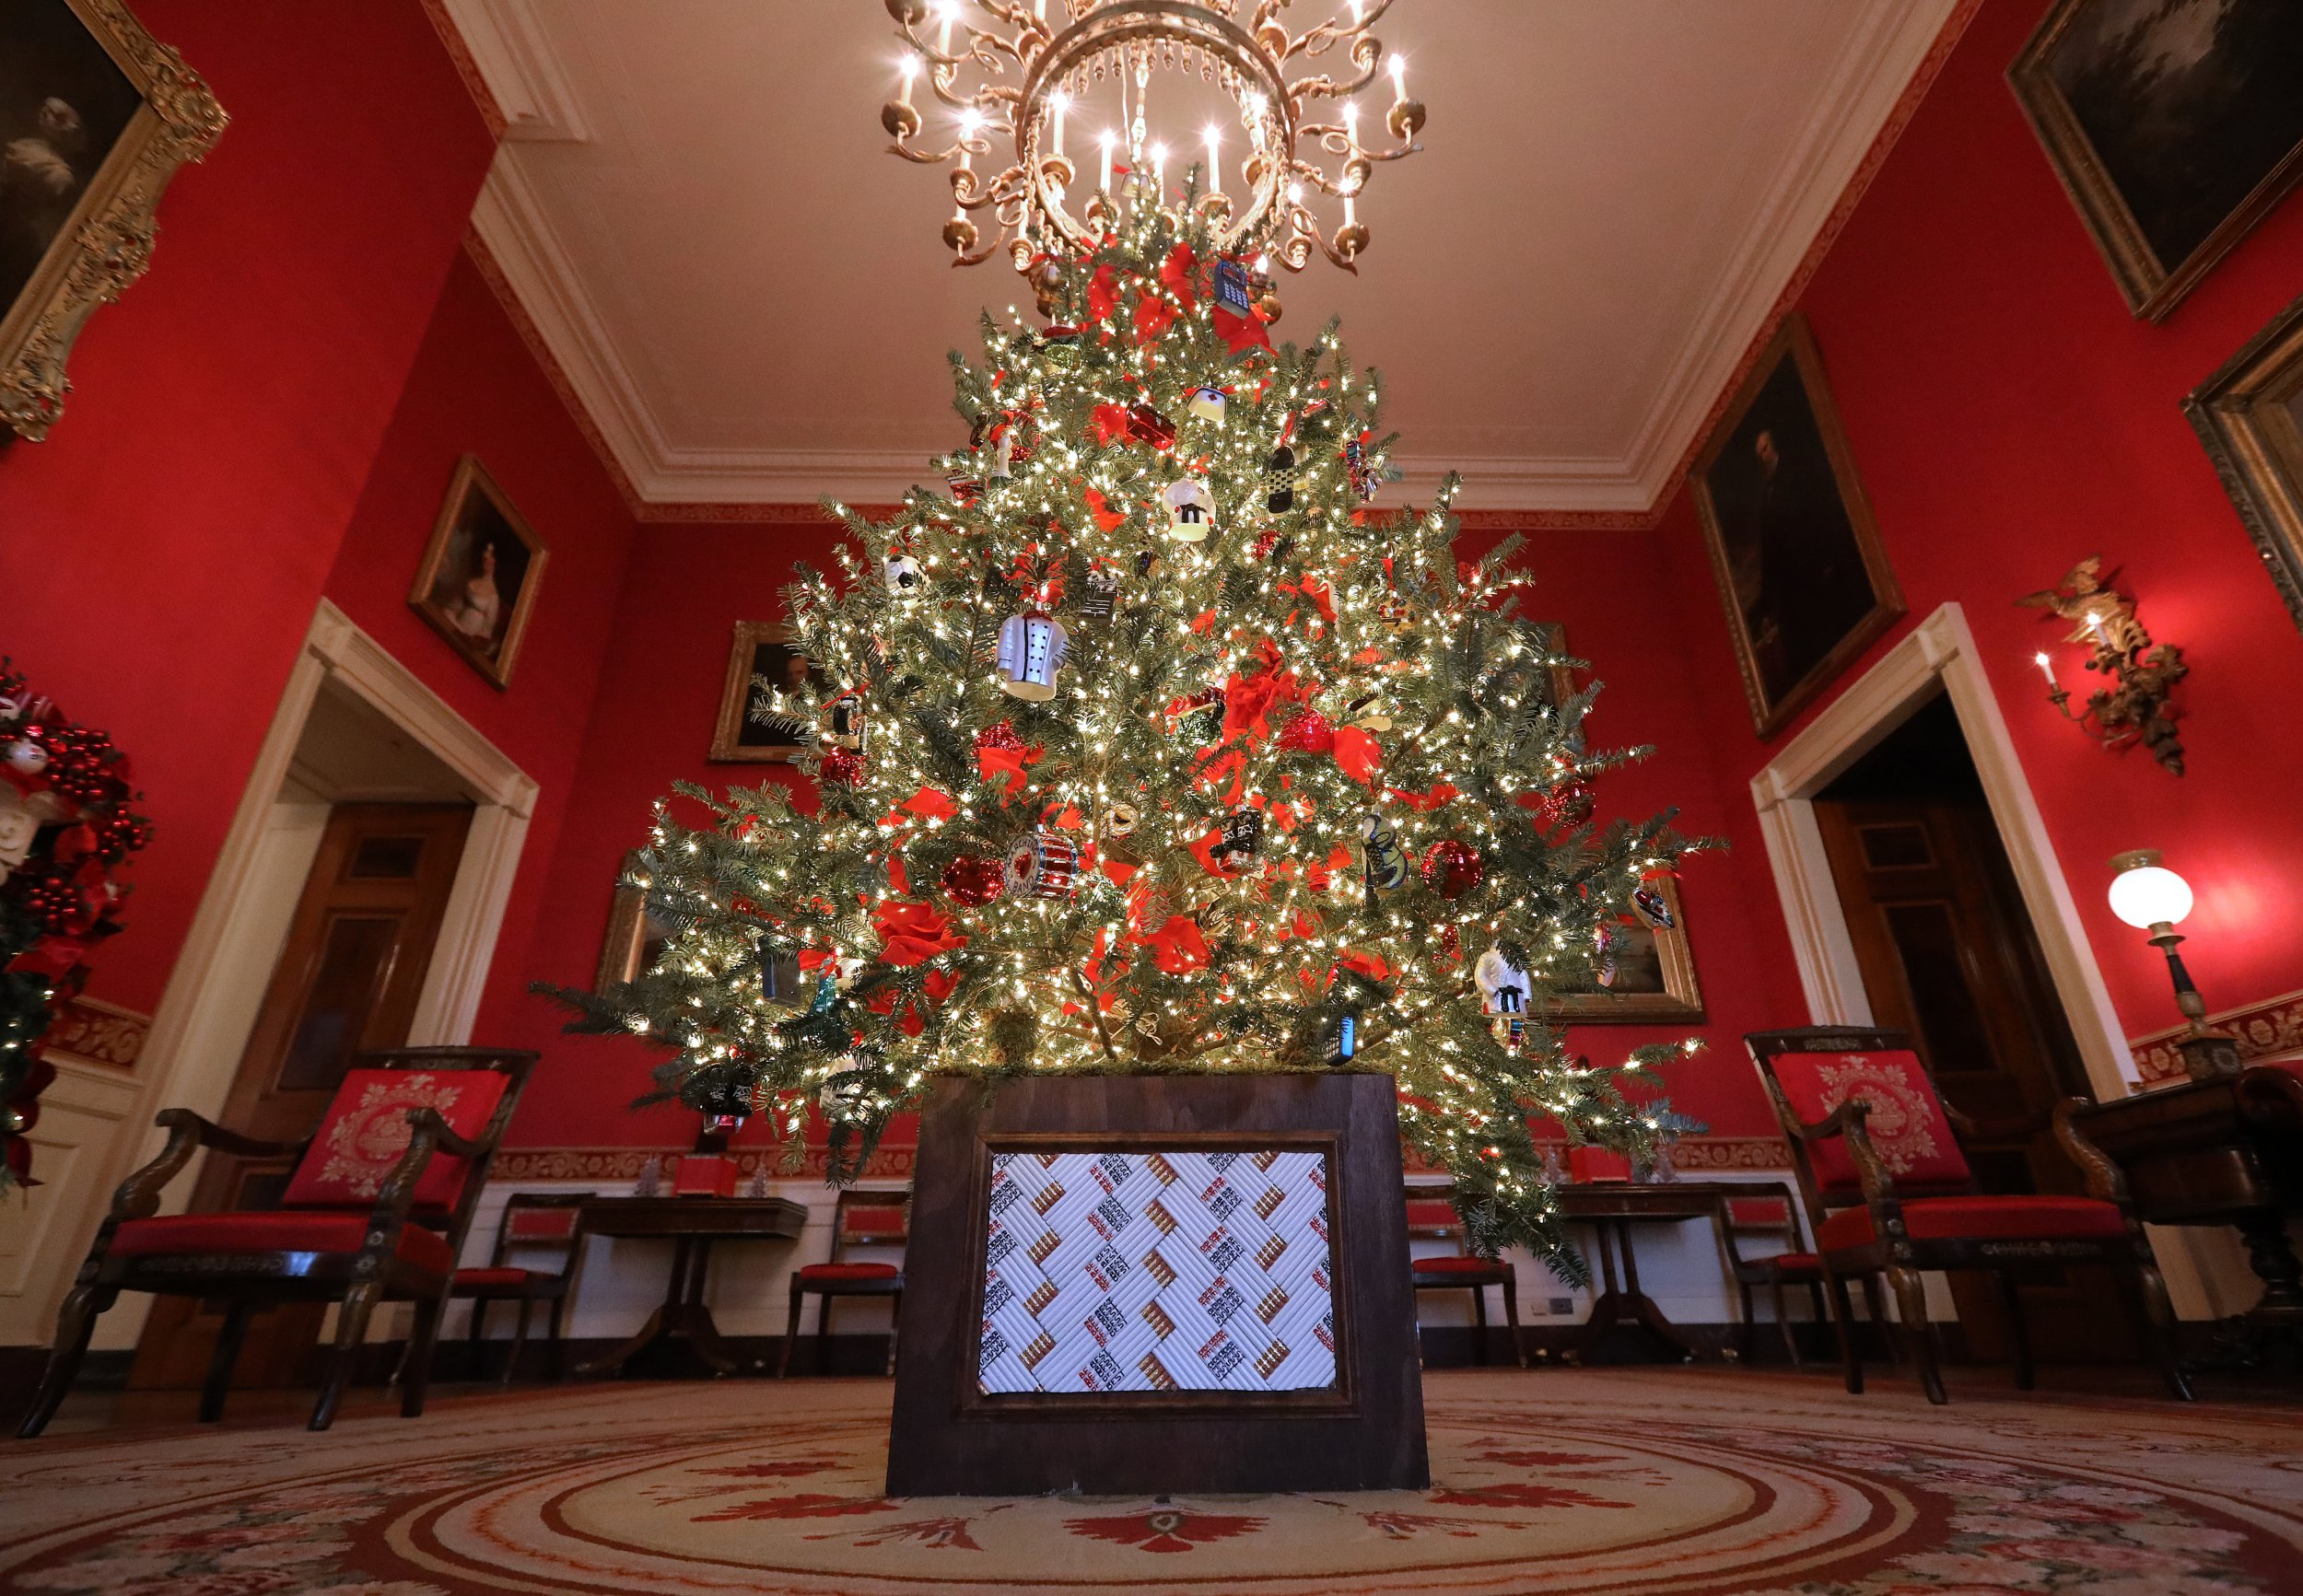 melania trumps christmas decorations mocked online as blood trees from the shining